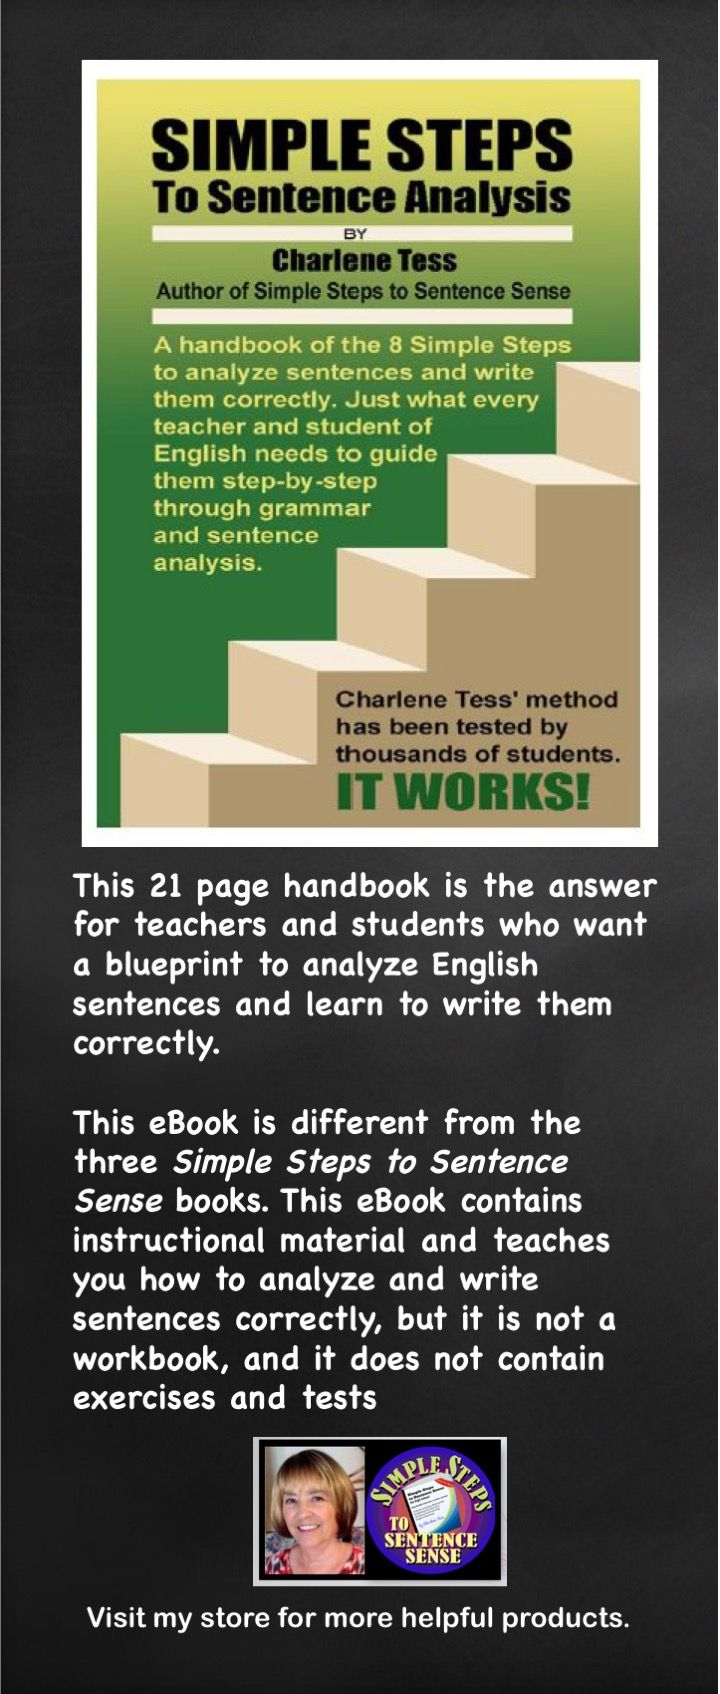 44 best simple steps to sentence sense images on pinterest frases simple steps to sentence analysis malvernweather Images